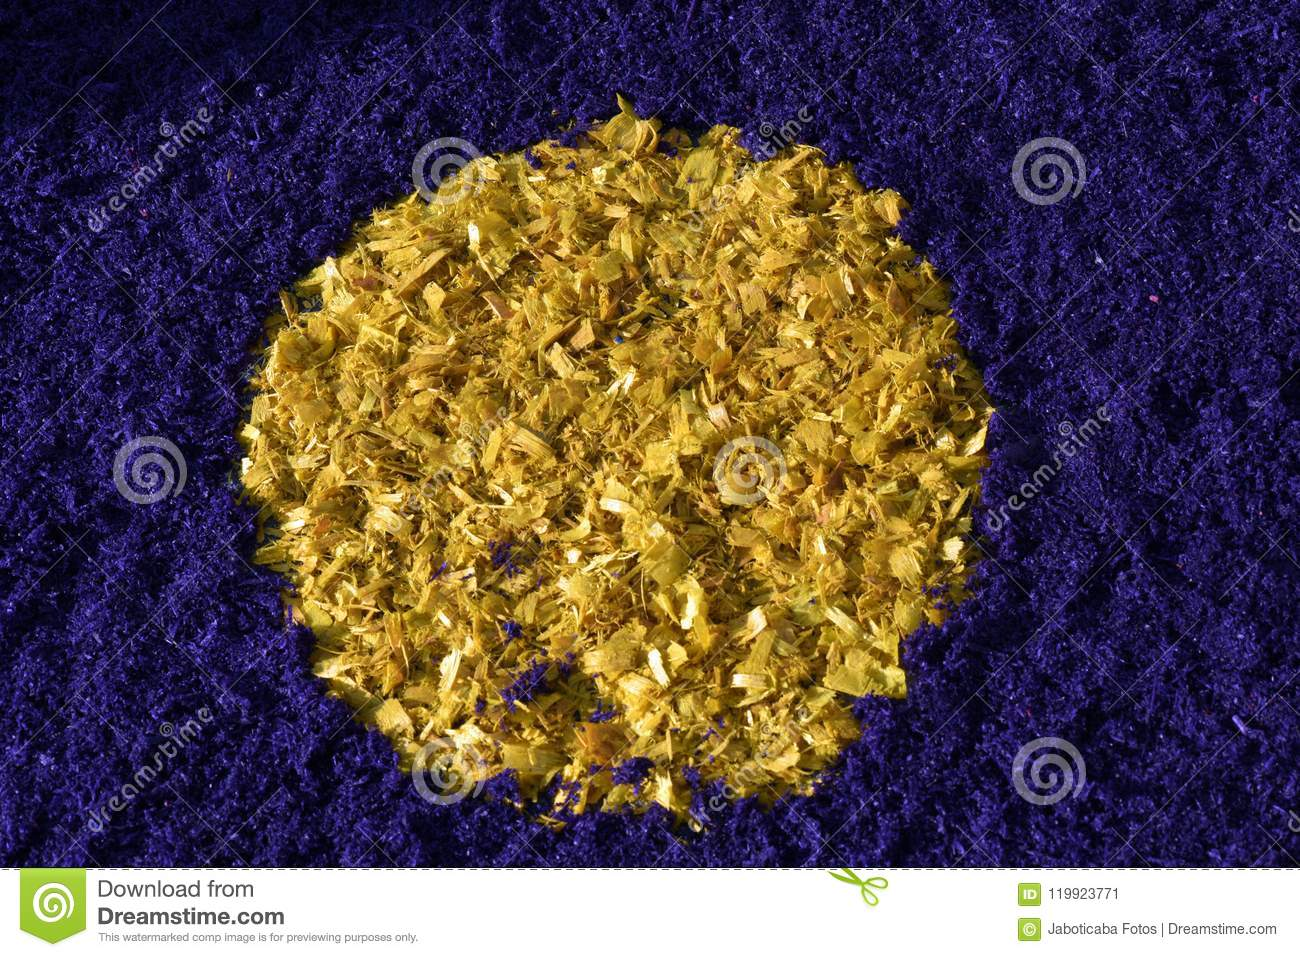 Background Of Colored Wood Shavings Stock Image - Image of